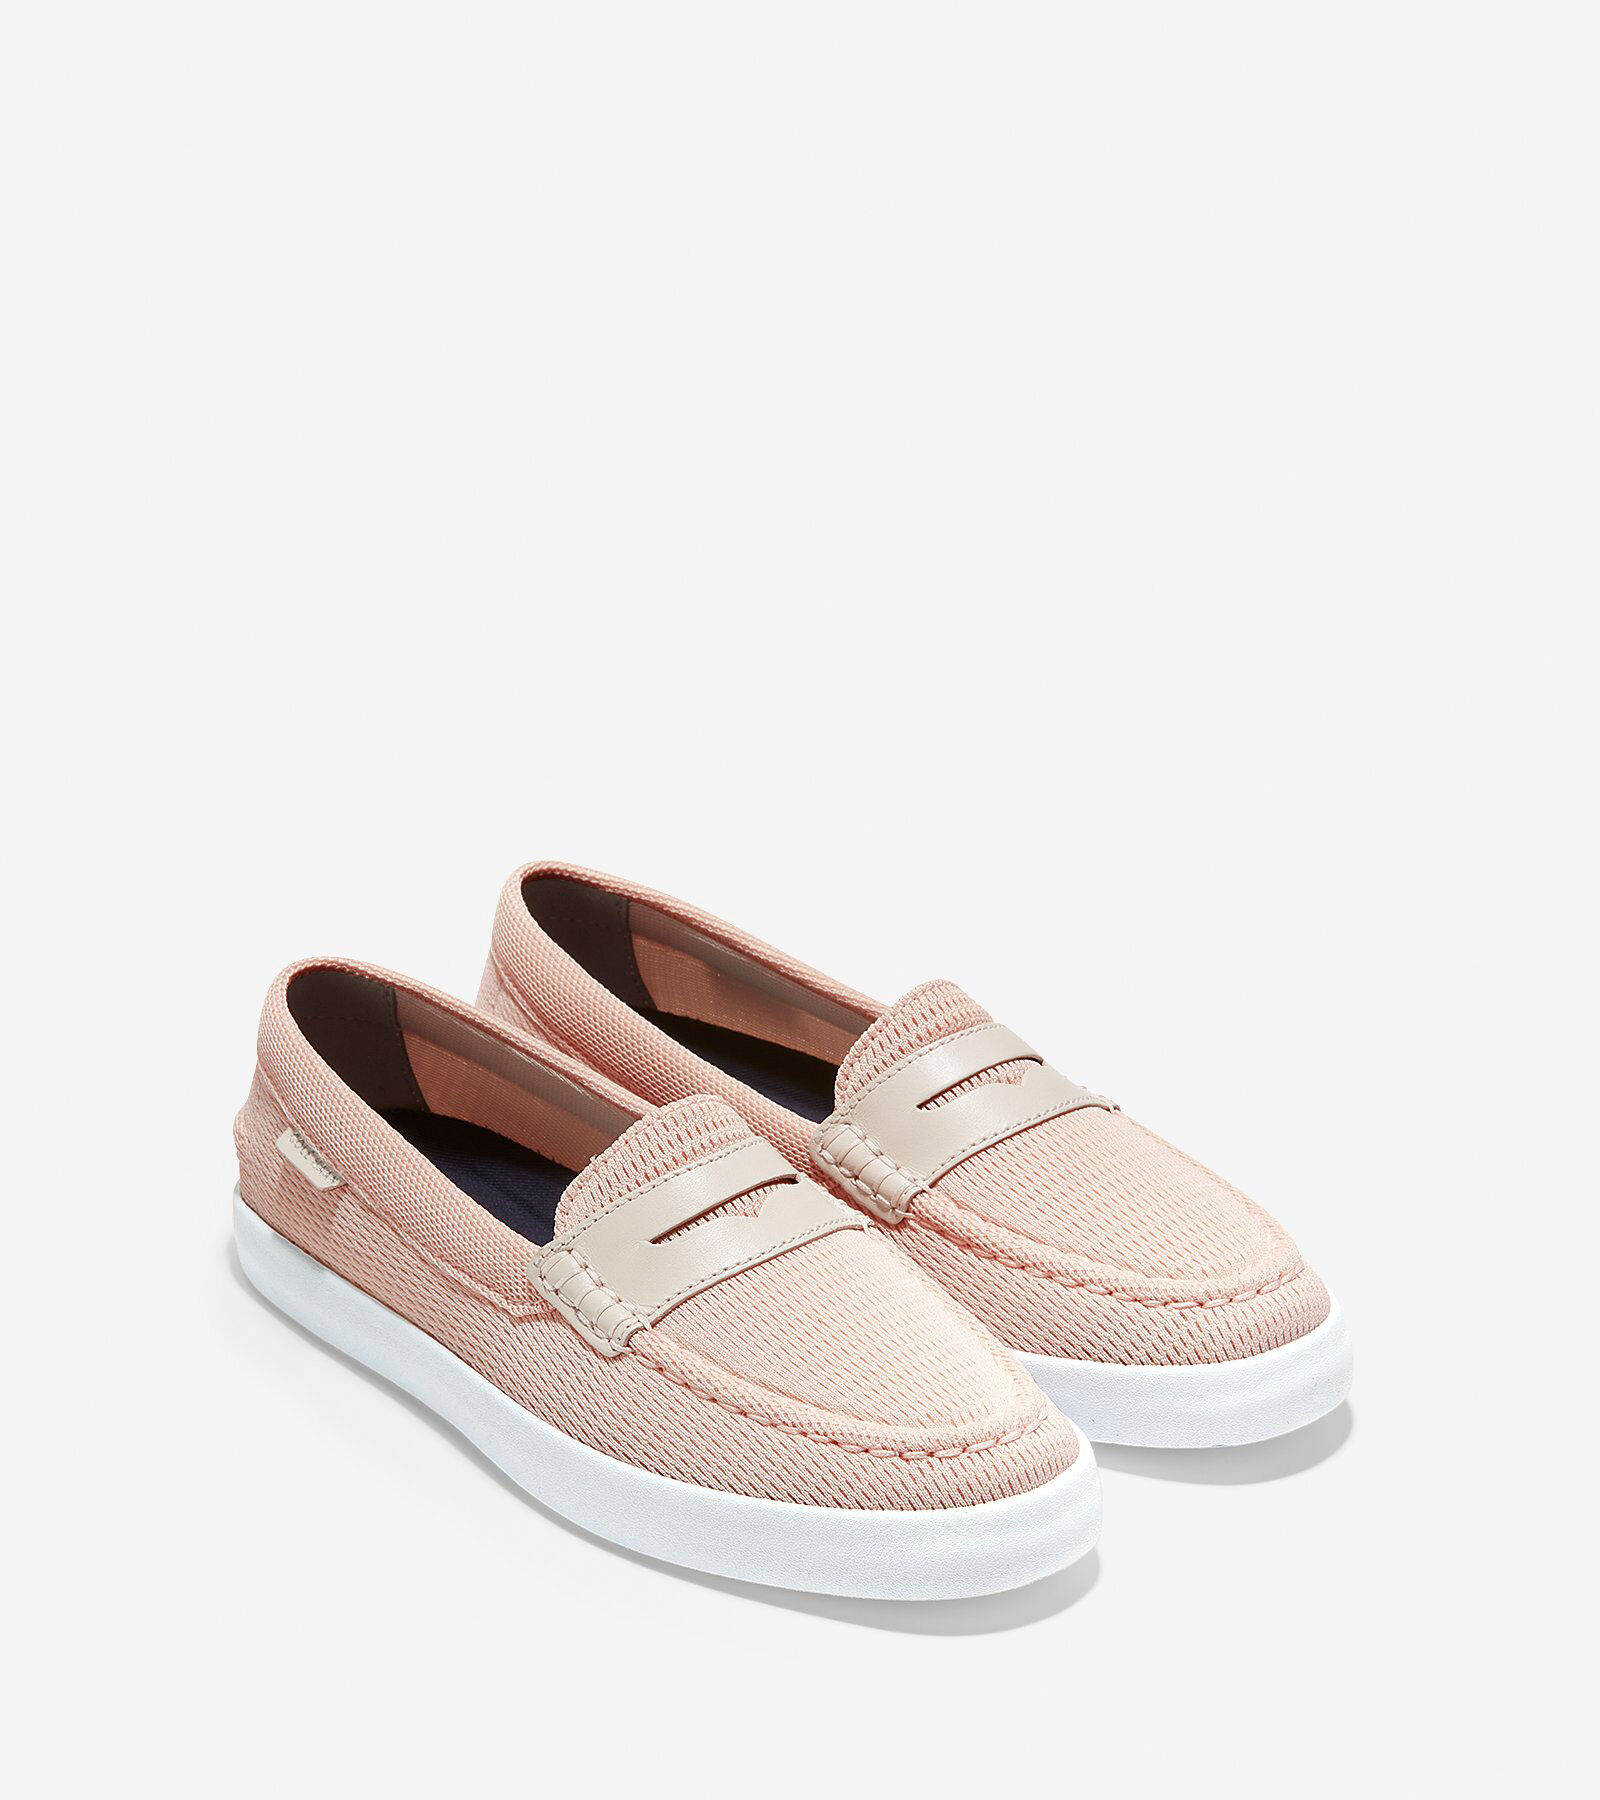 Cole Haan Nantucket Knit Loafer VAq0pgb